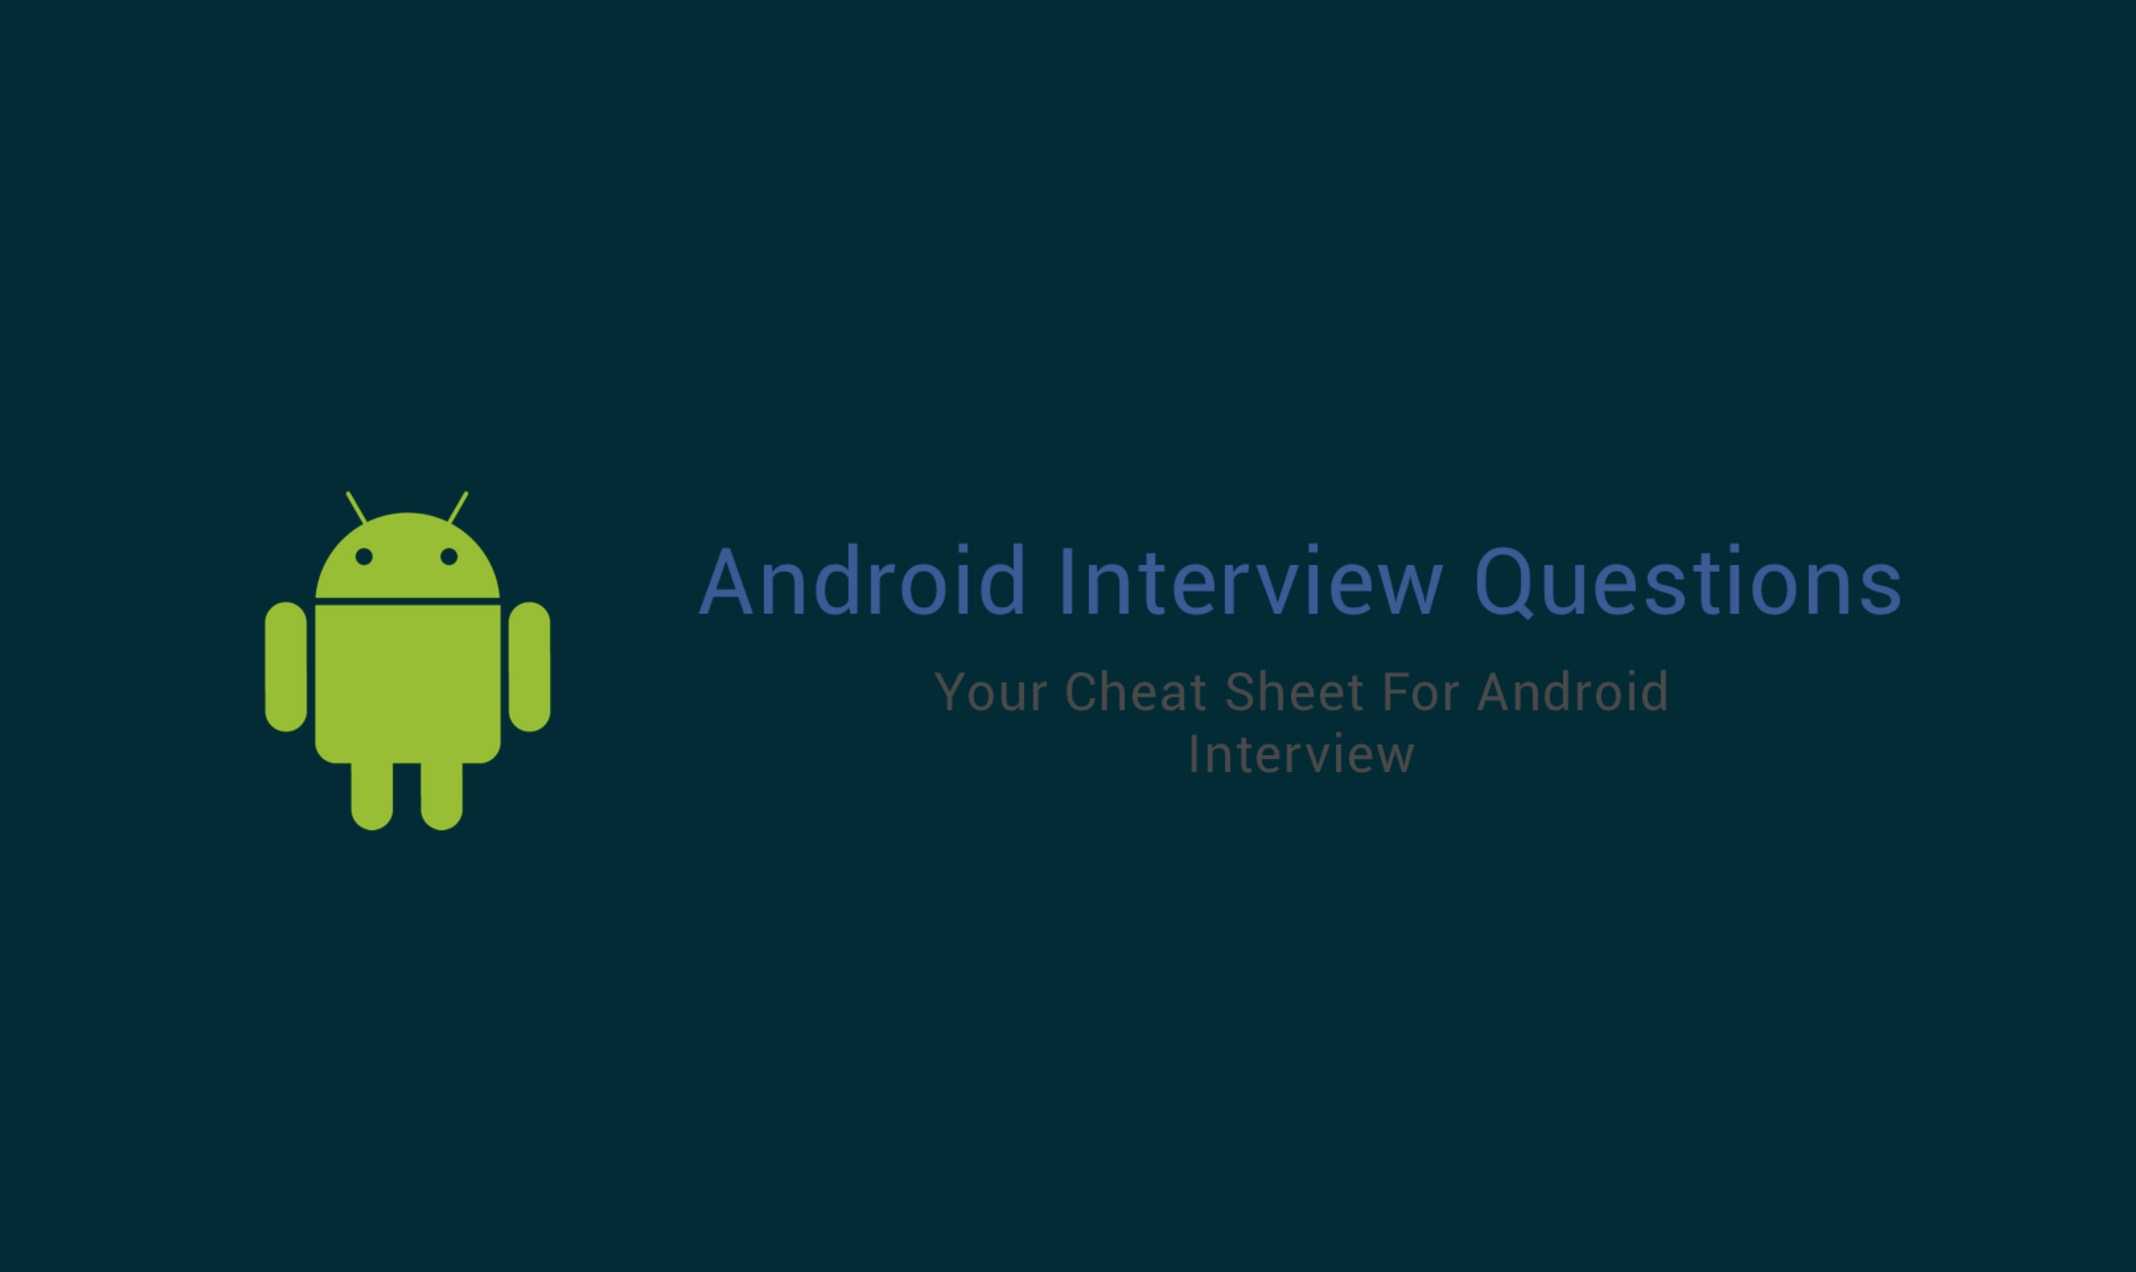 Android Interview Questions Github 面試-github開源-帥張上傳- 台部落